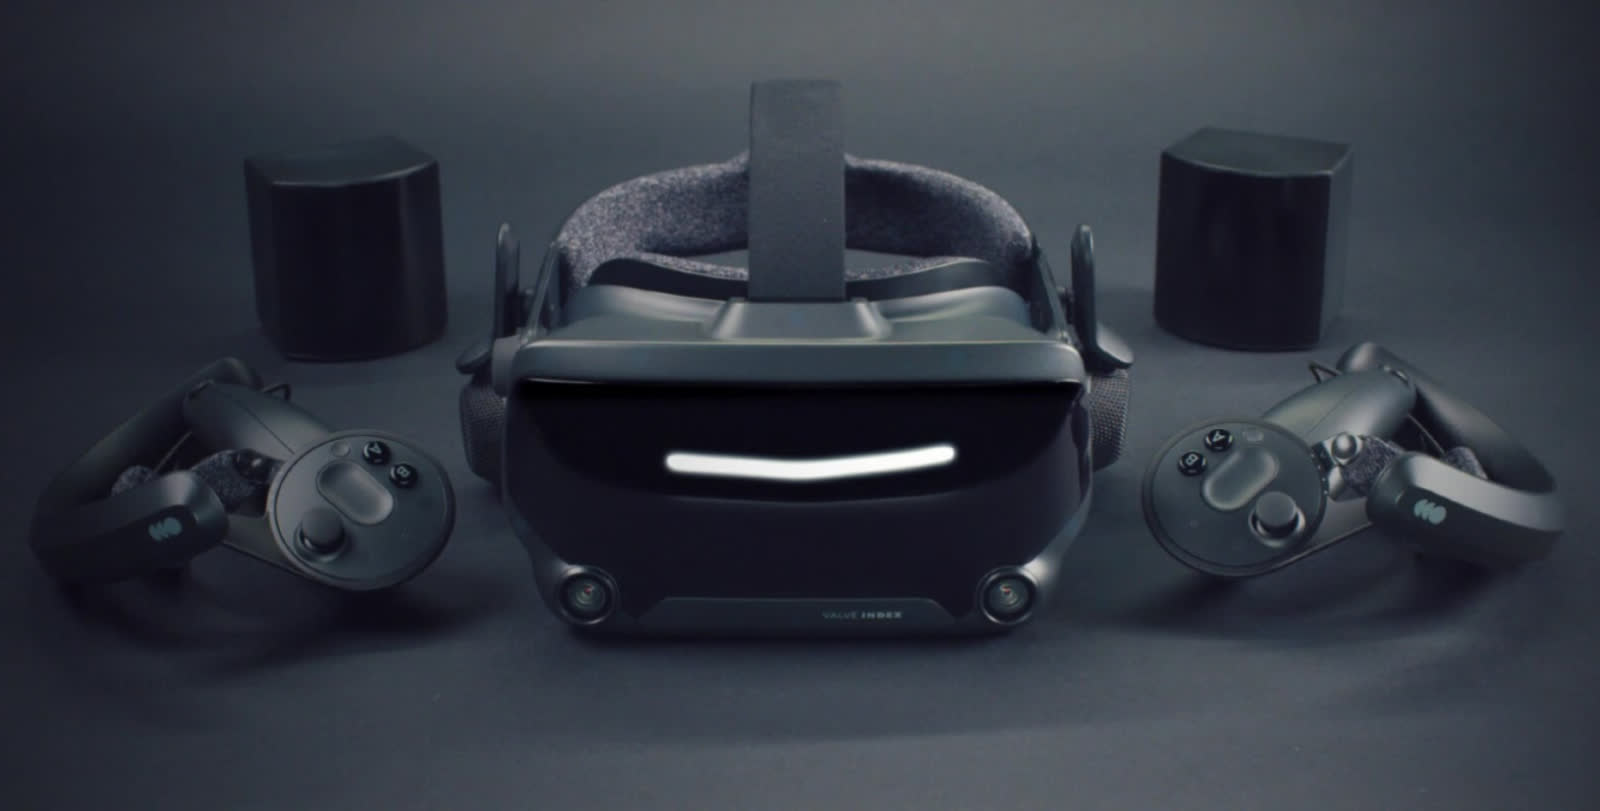 $1,000 Valve Index becomes 2nd most popular VR headset on Steam